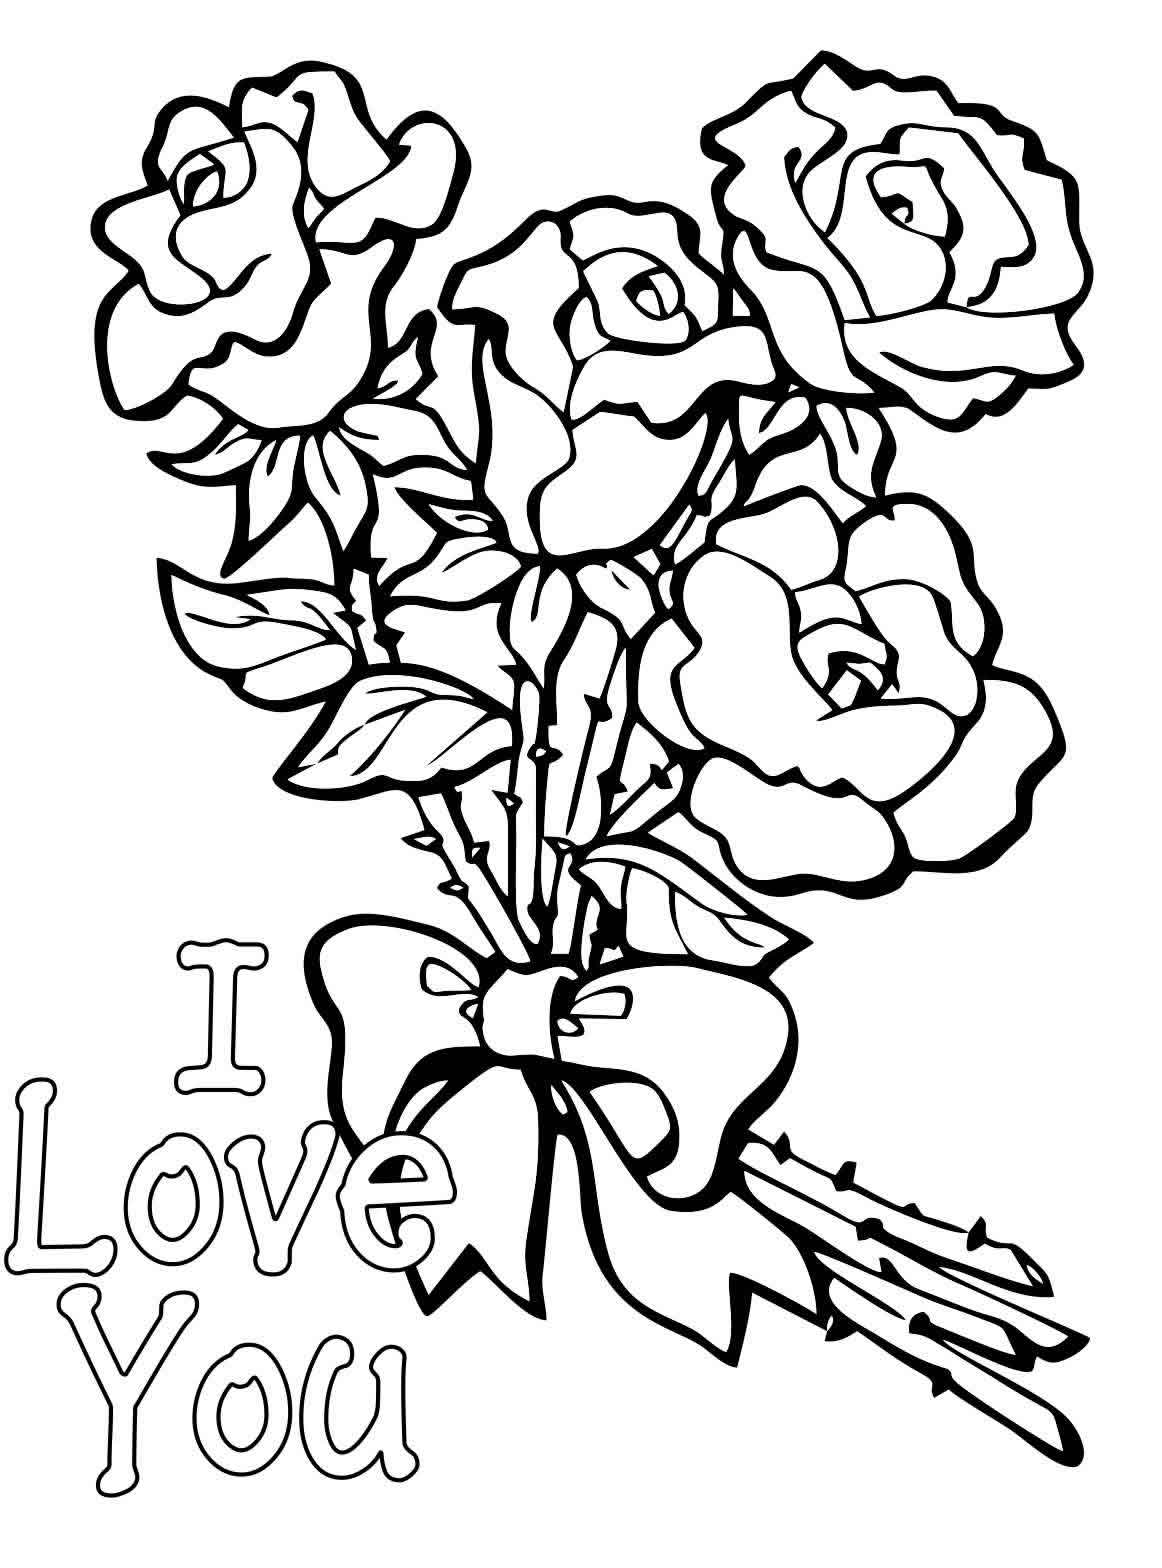 Free Coloring Pages | crayola.com | 1568x1162